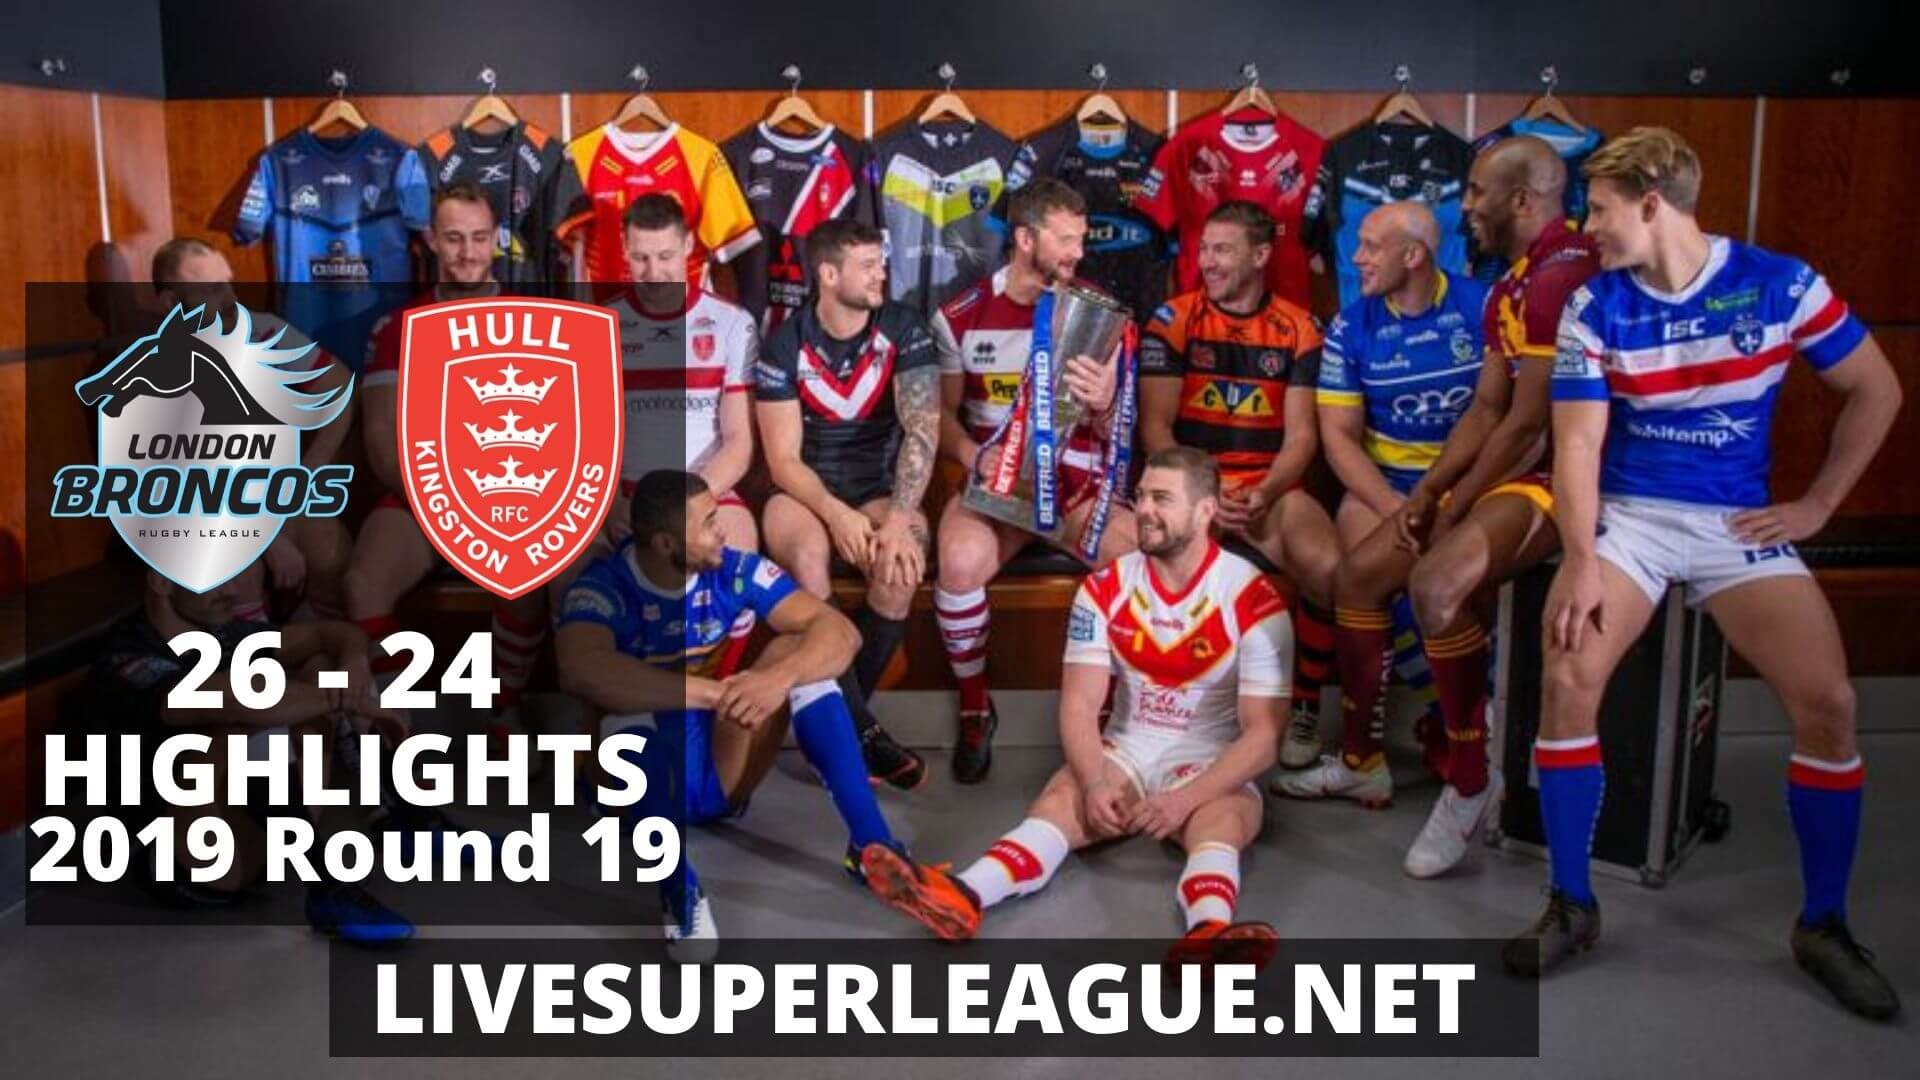 London Broncos Vs Hull Kingston Rovers Highlights 2019 Round 19